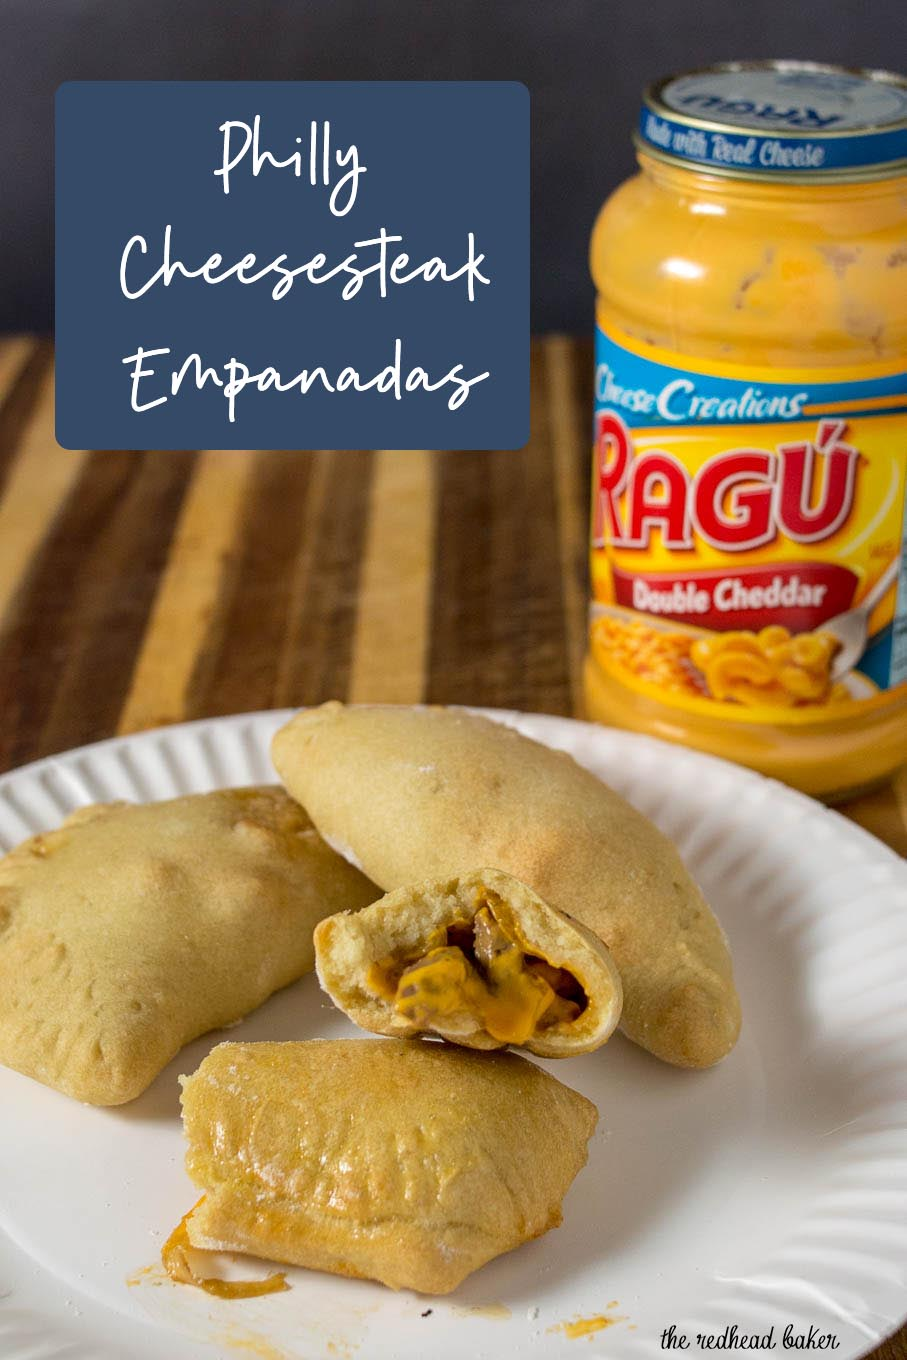 A plate of Philly cheesesteak empanadas with a jar of Ragu Double Cheddar Sauce.